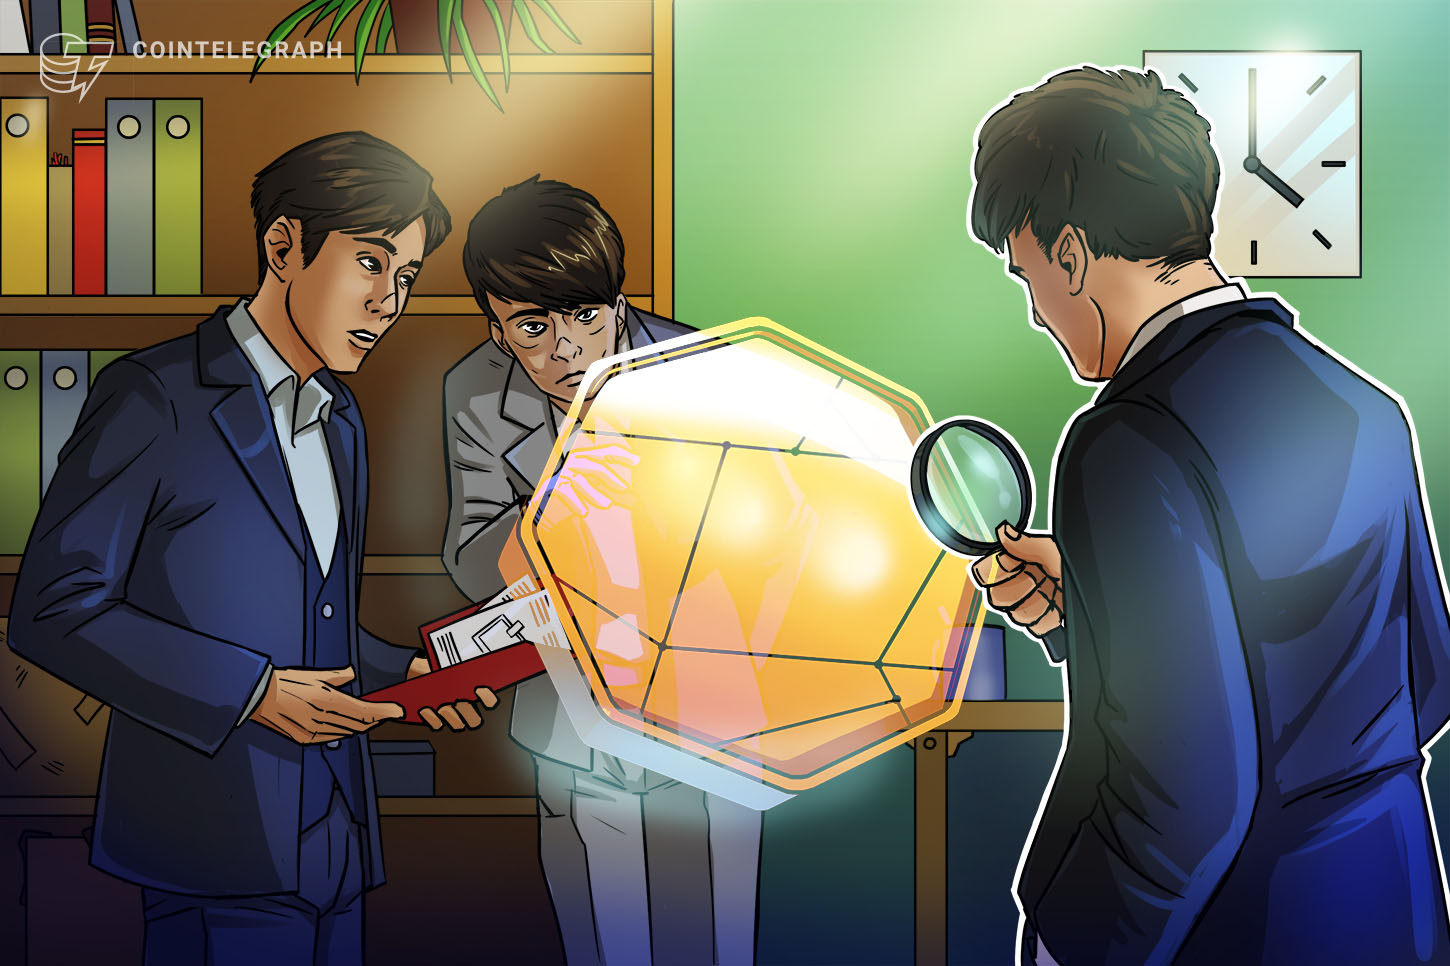 Korean FSC chair nominee doesn't think crypto is a financial asset